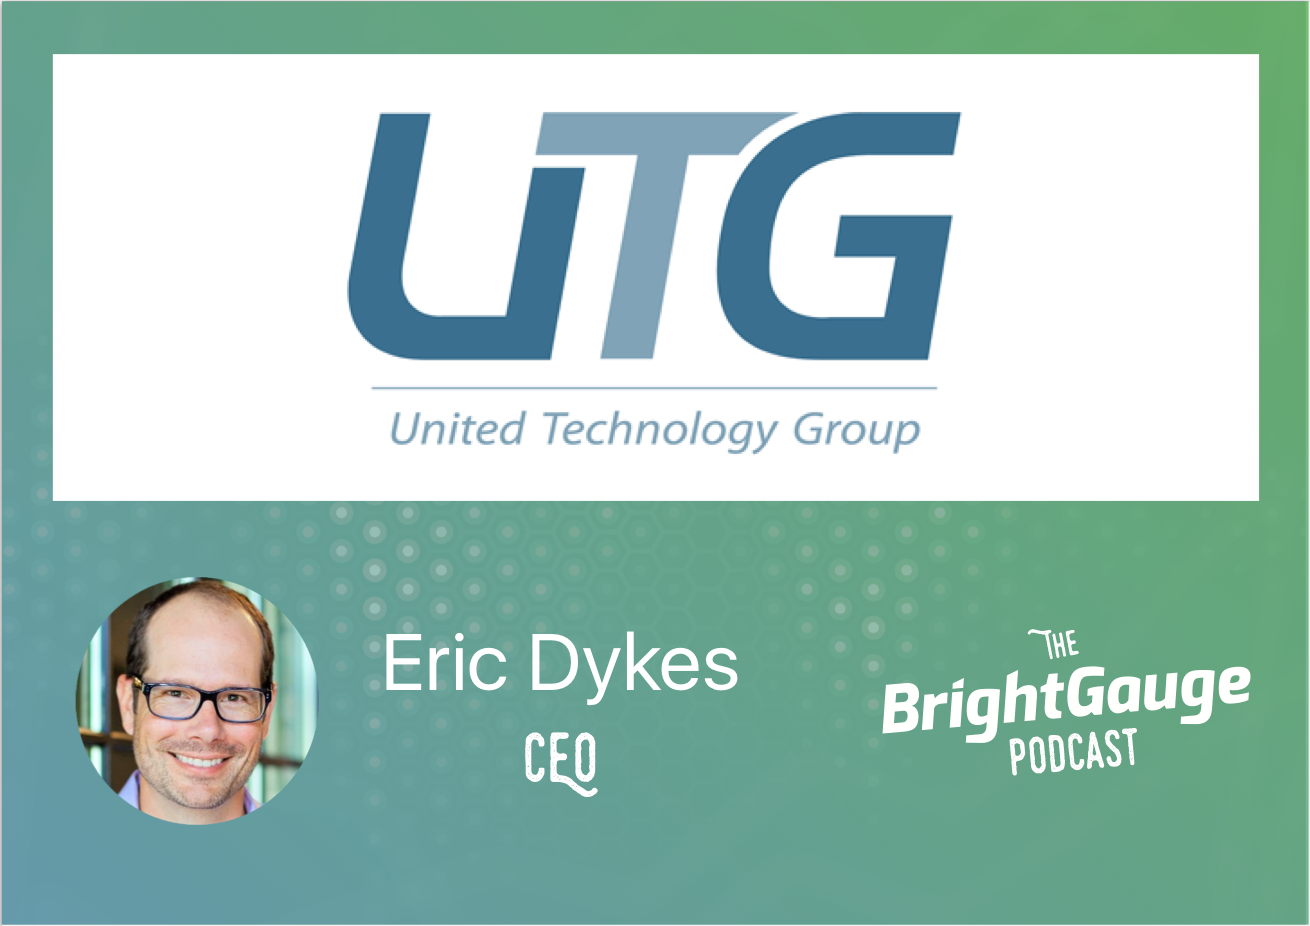 [Podcast] Episode 11 with Eric Dykes of United Technology Group